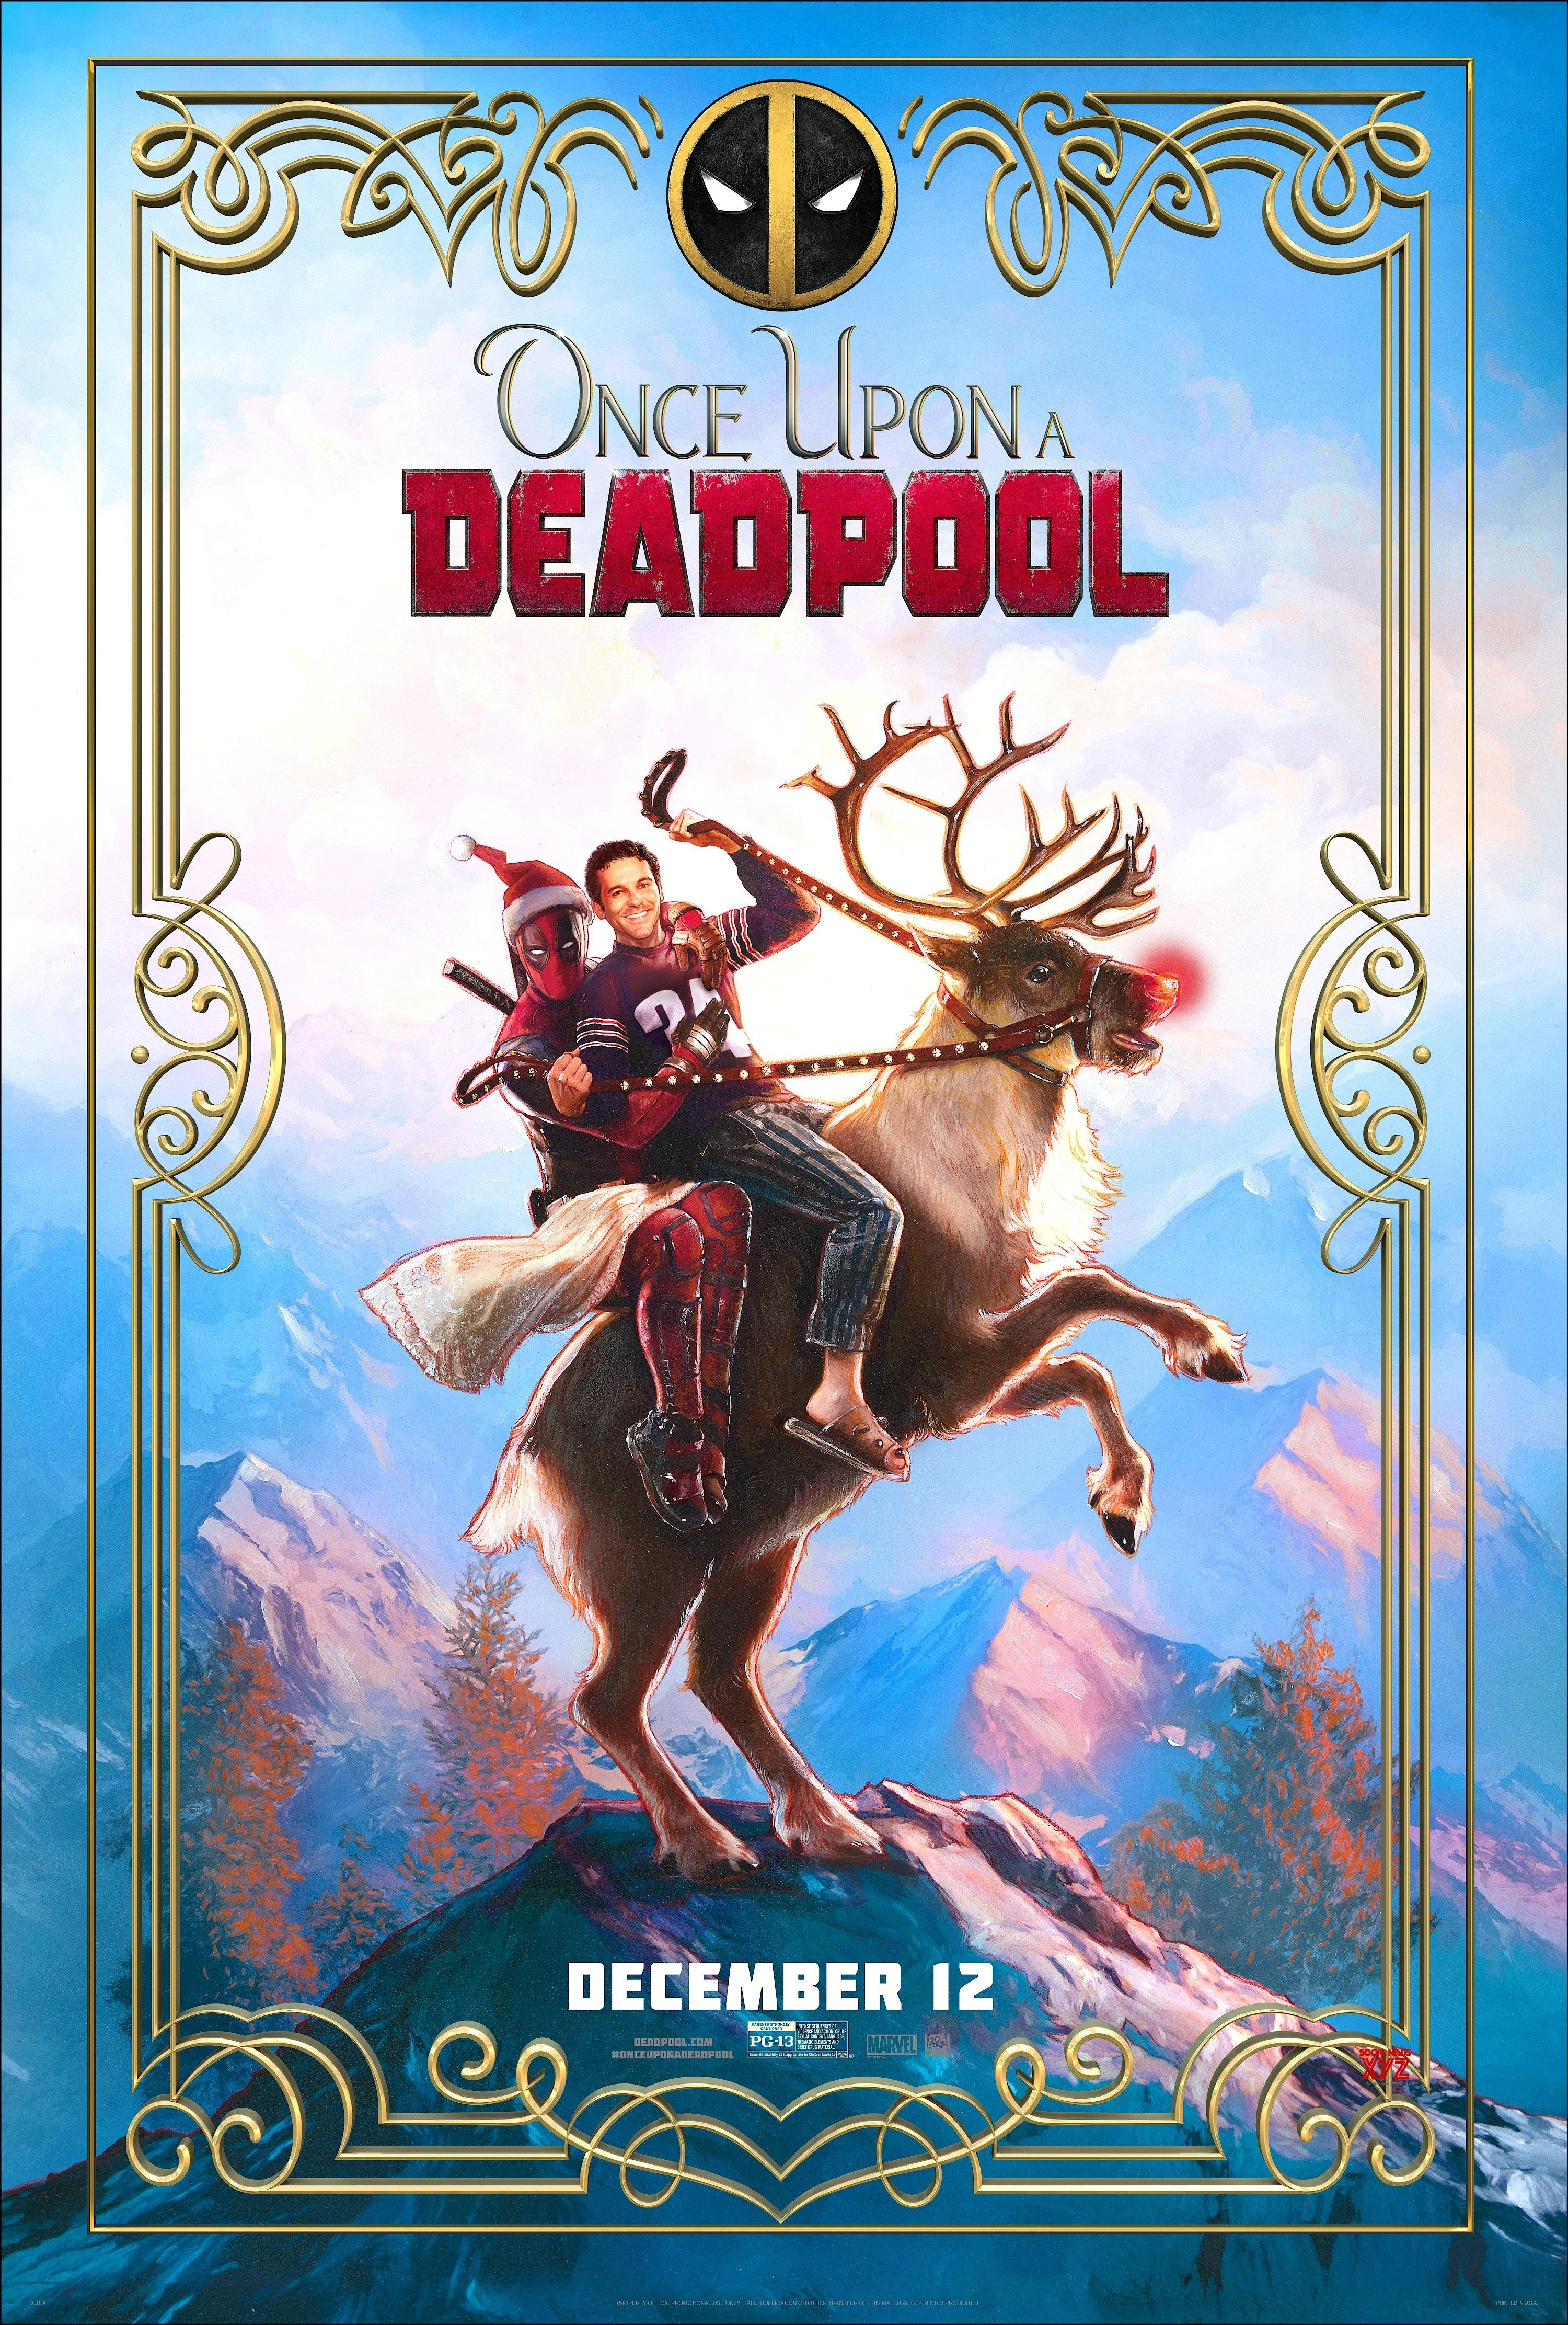 Once Upon A Deadpool Movie Hd Poster Social News Xyz Gallery